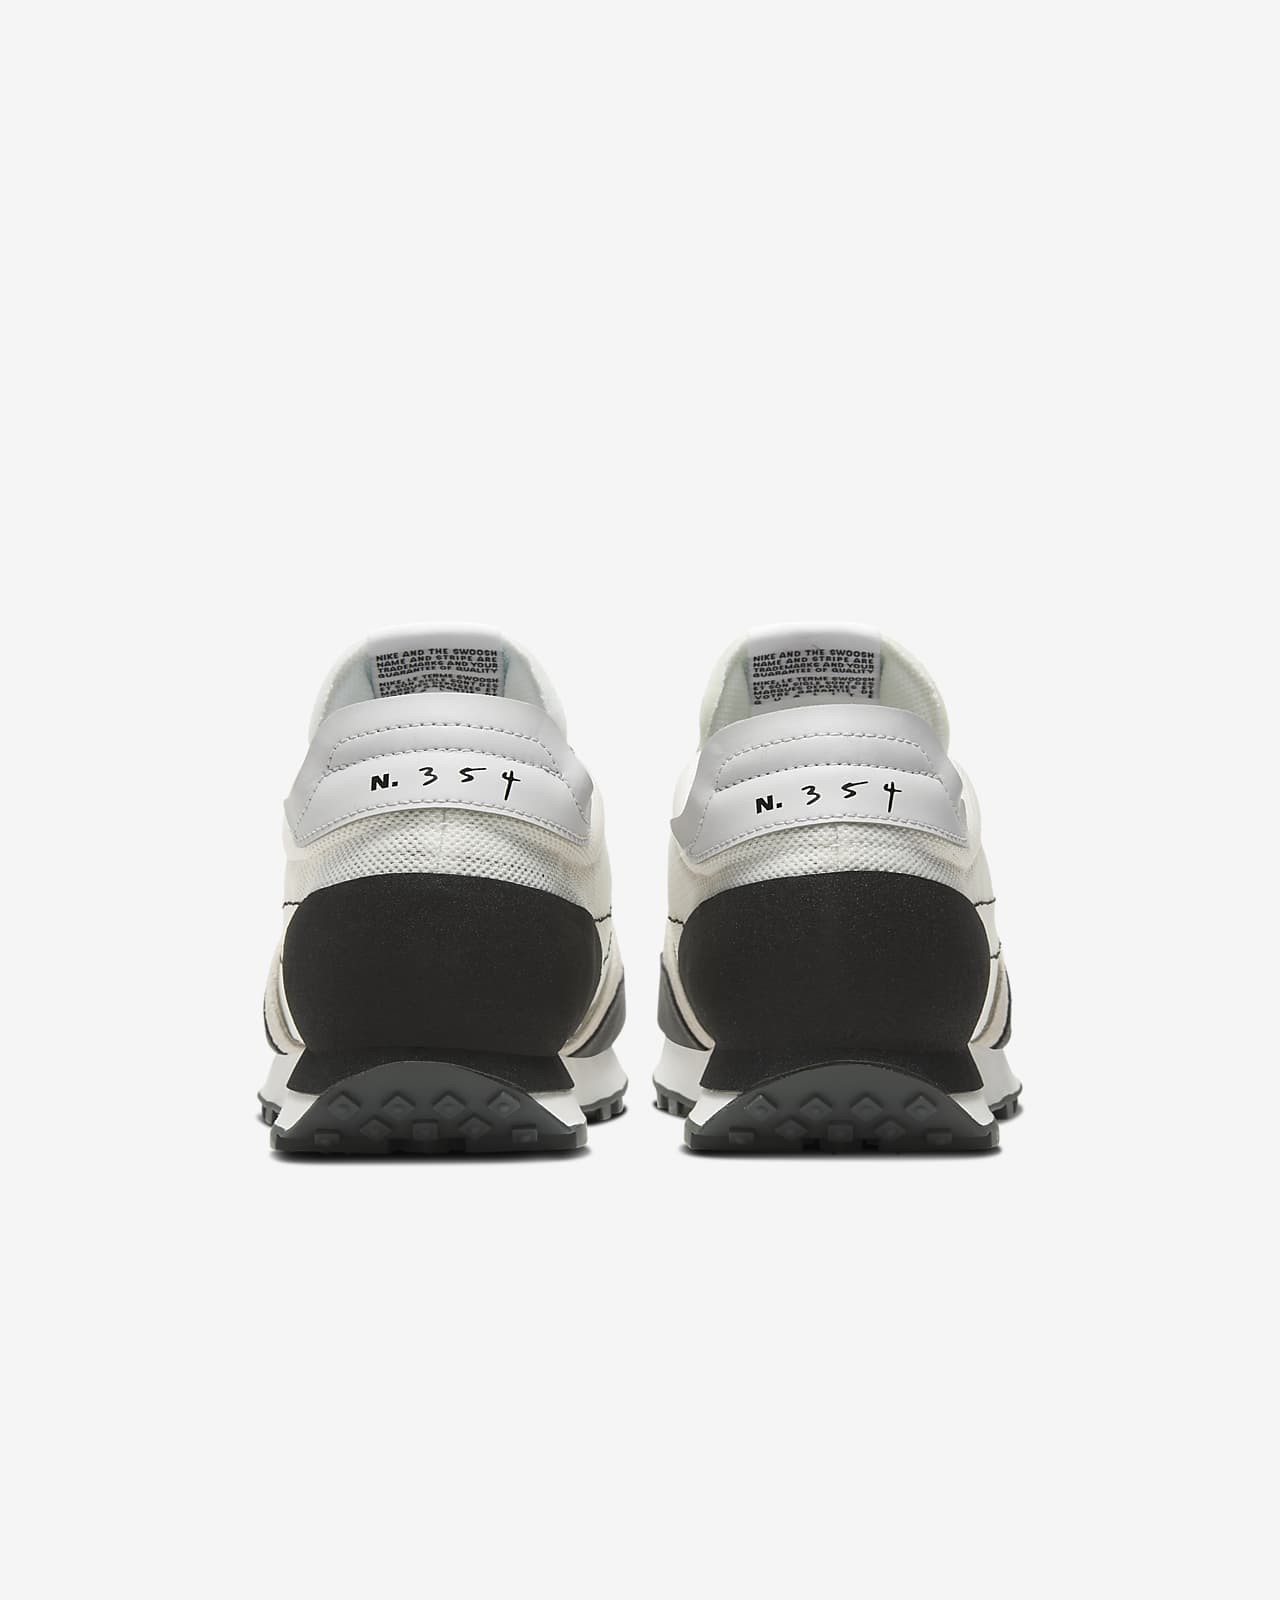 Chaussure Nike DBreak Type pour Homme